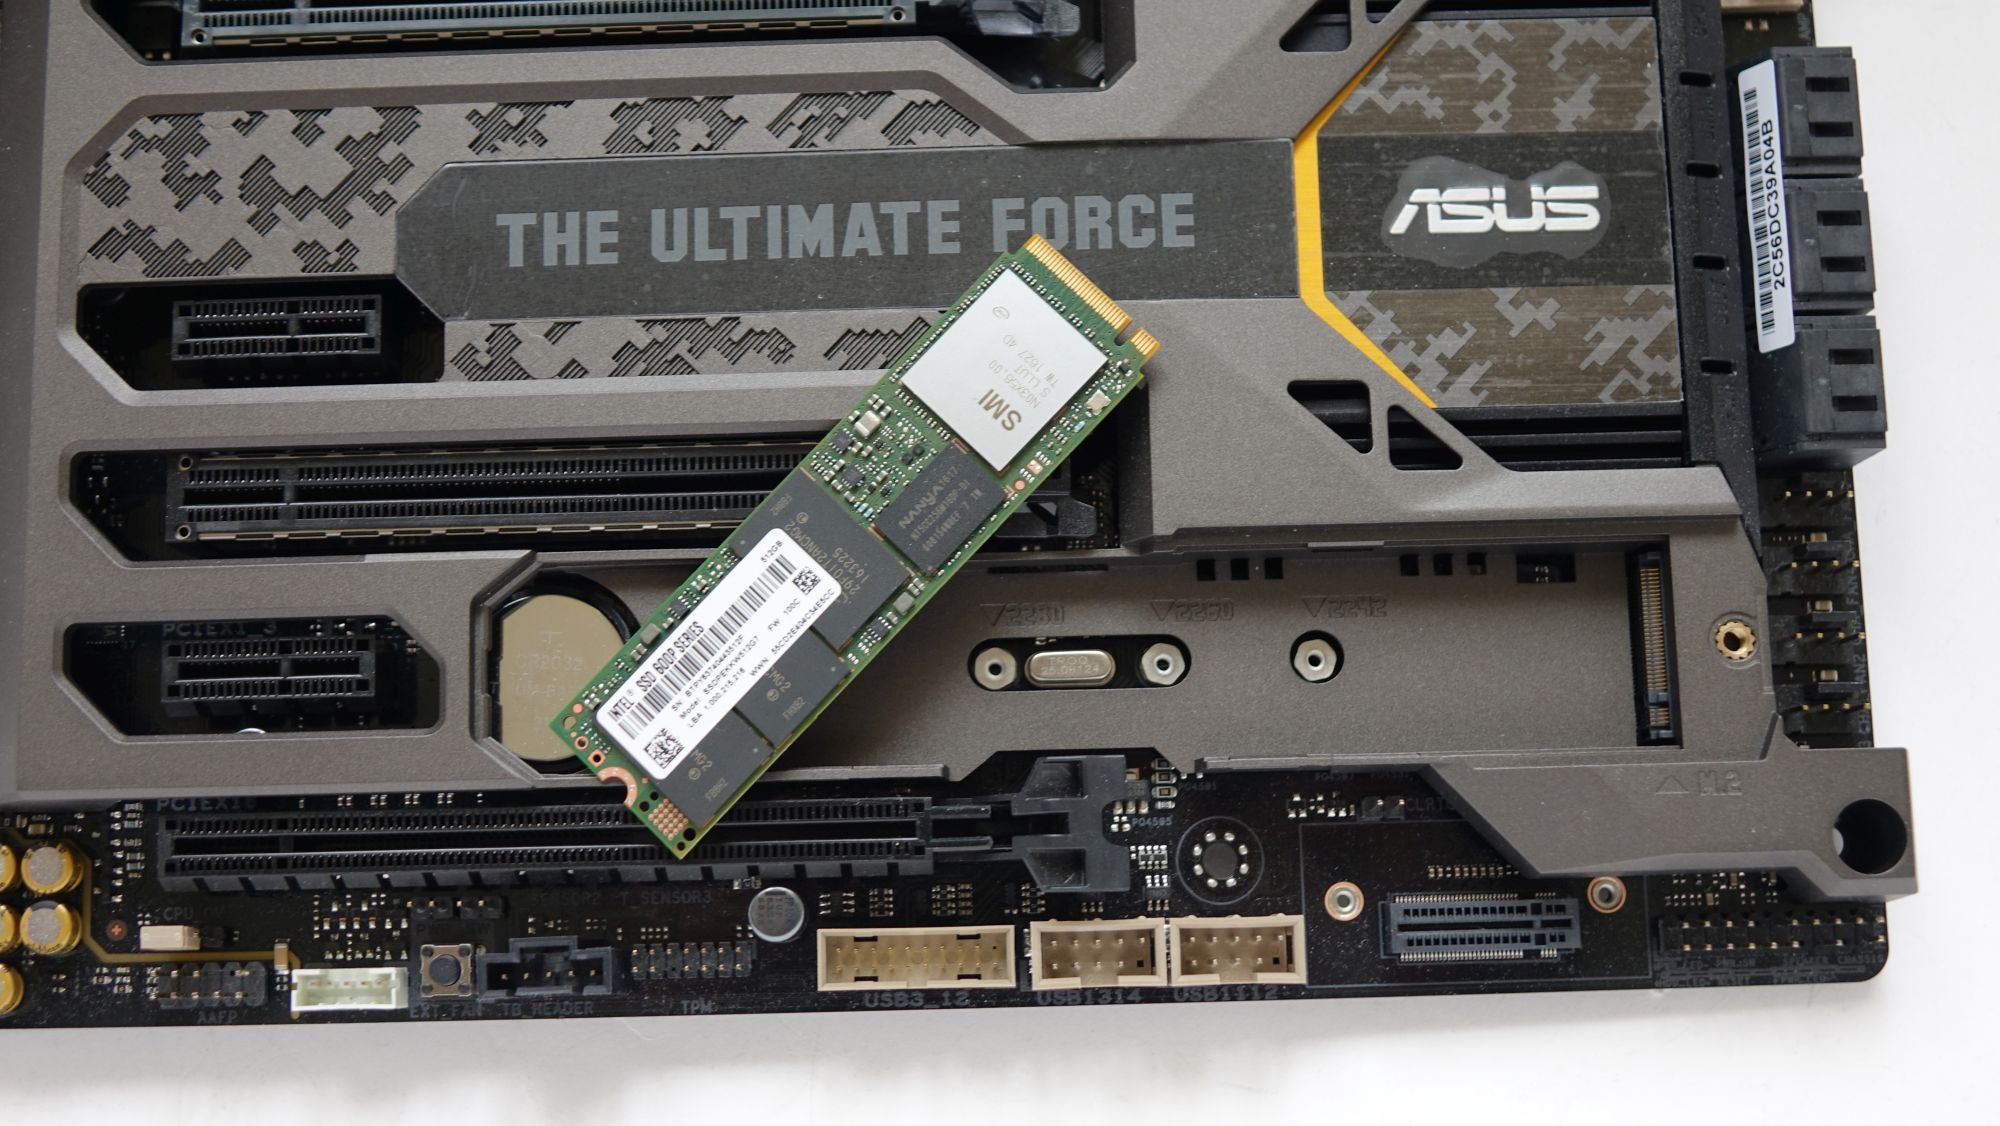 ASUS TUF Z270 Mark 1 и ssd